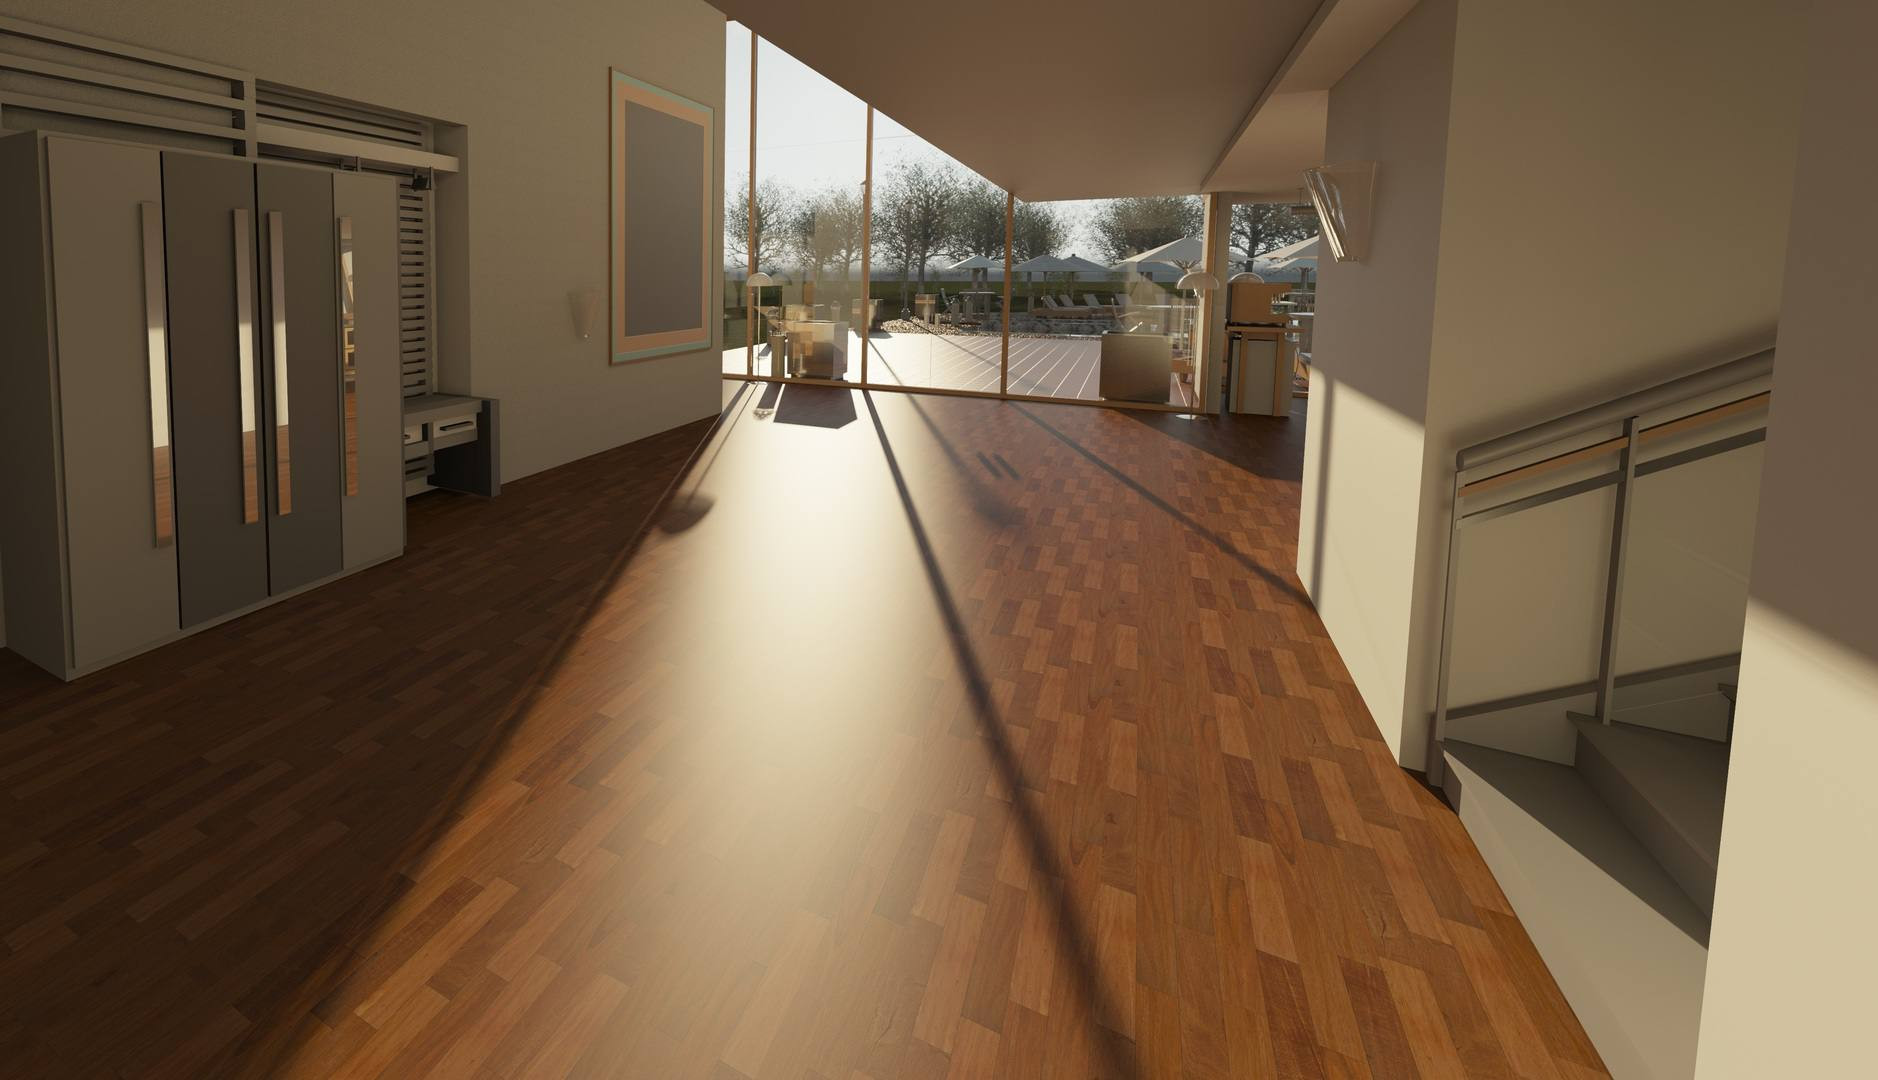 Painting Hardwood Floors Brown Of Common Flooring Types Currently Used In Renovation and Building Intended for Architecture Wood House Floor Interior Window 917178 Pxhere Com 5ba27a2cc9e77c00503b27b9